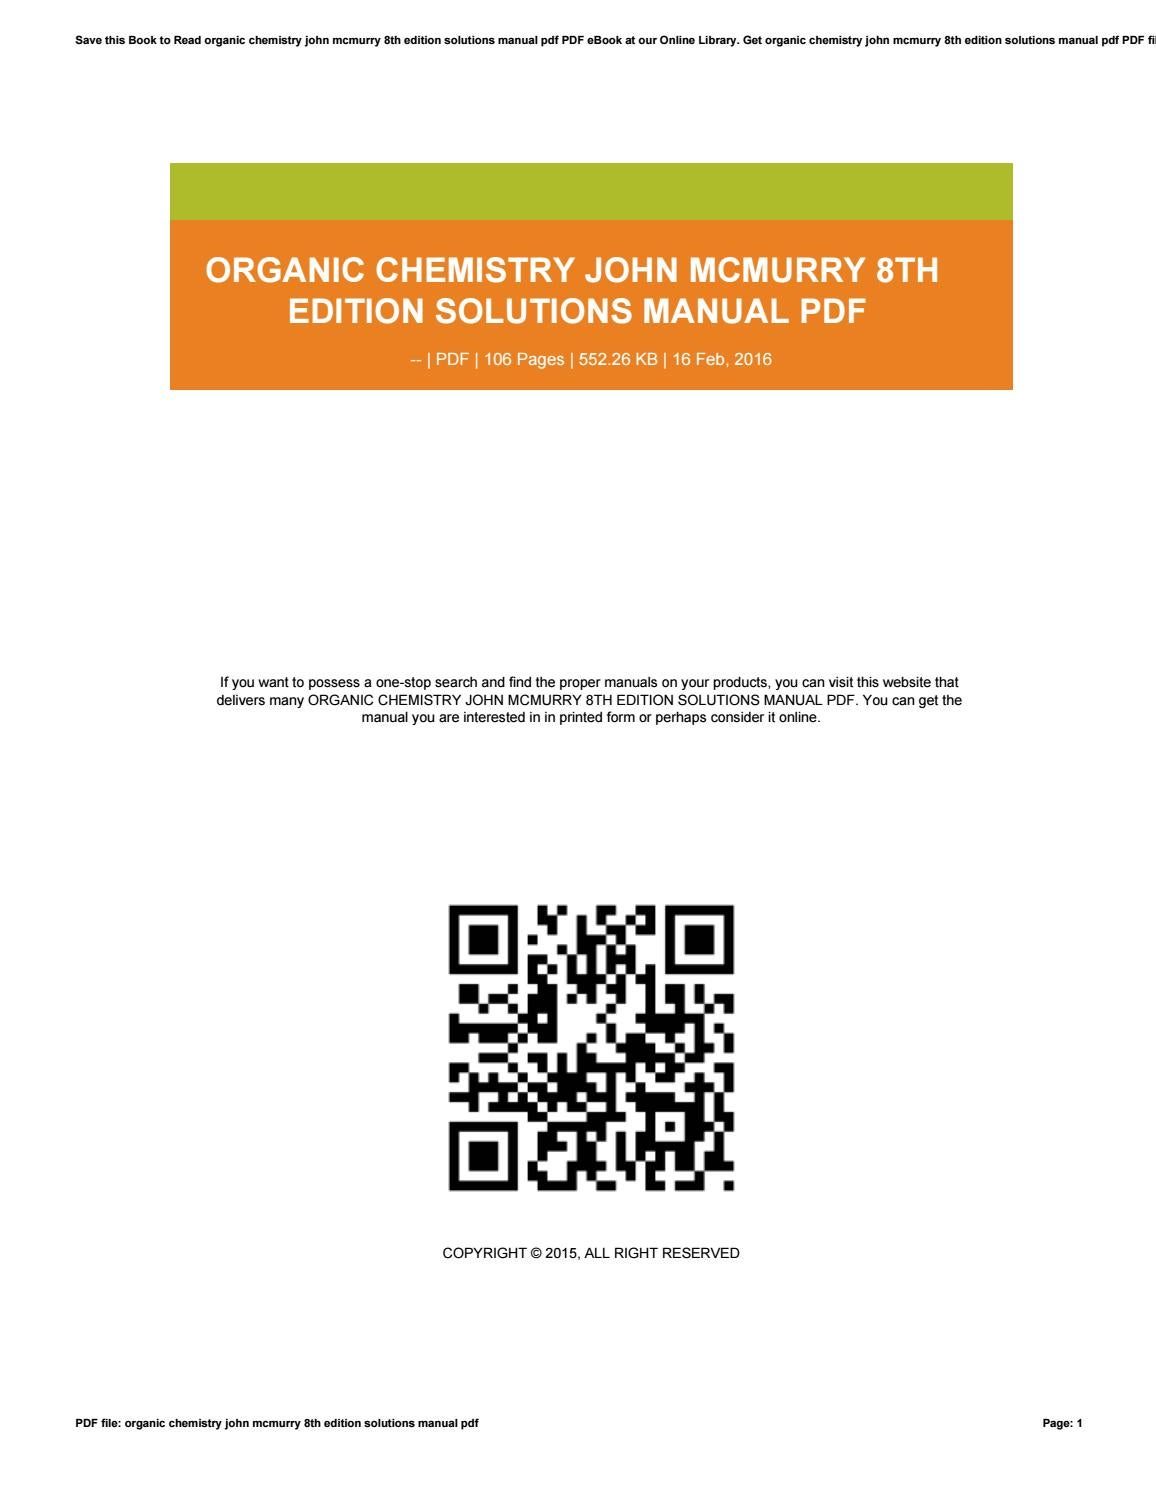 Organic chemistry john mcmurry 8th edition solutions manual pdf by mail6358  - issuu